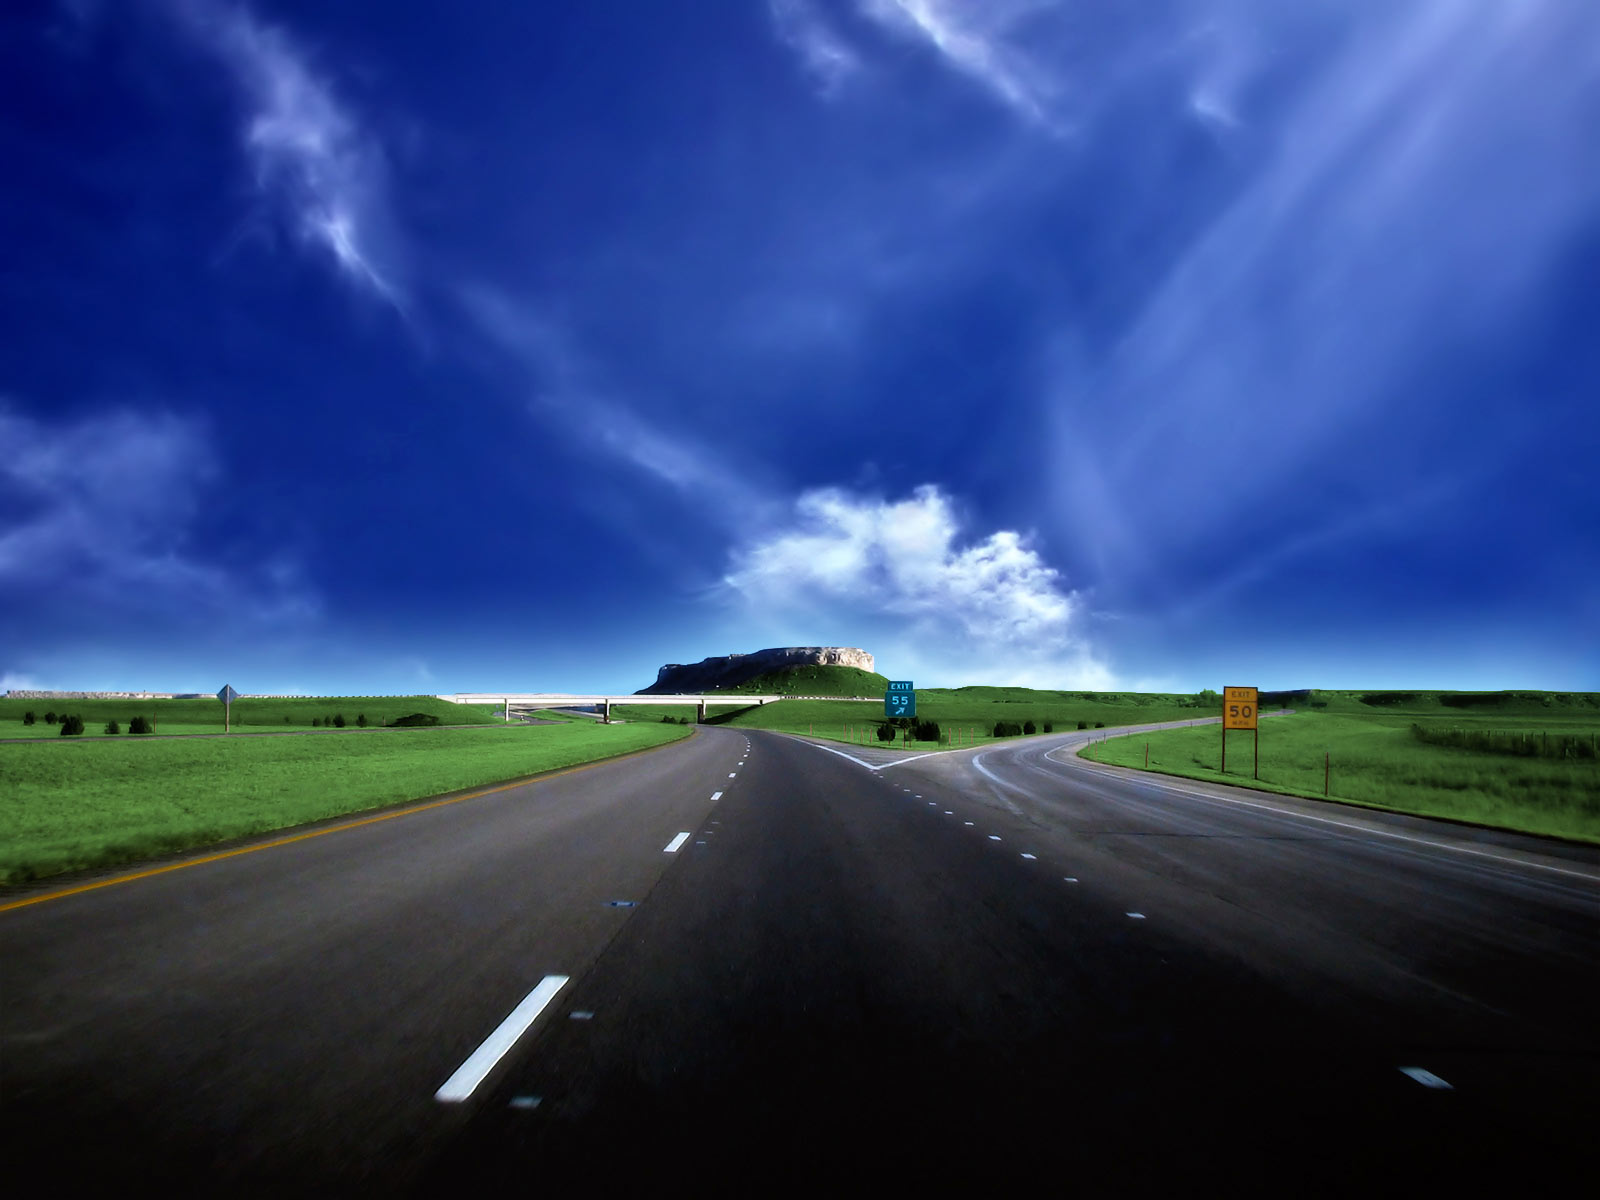 landscape_traveling_highway_scenery_wallpaper